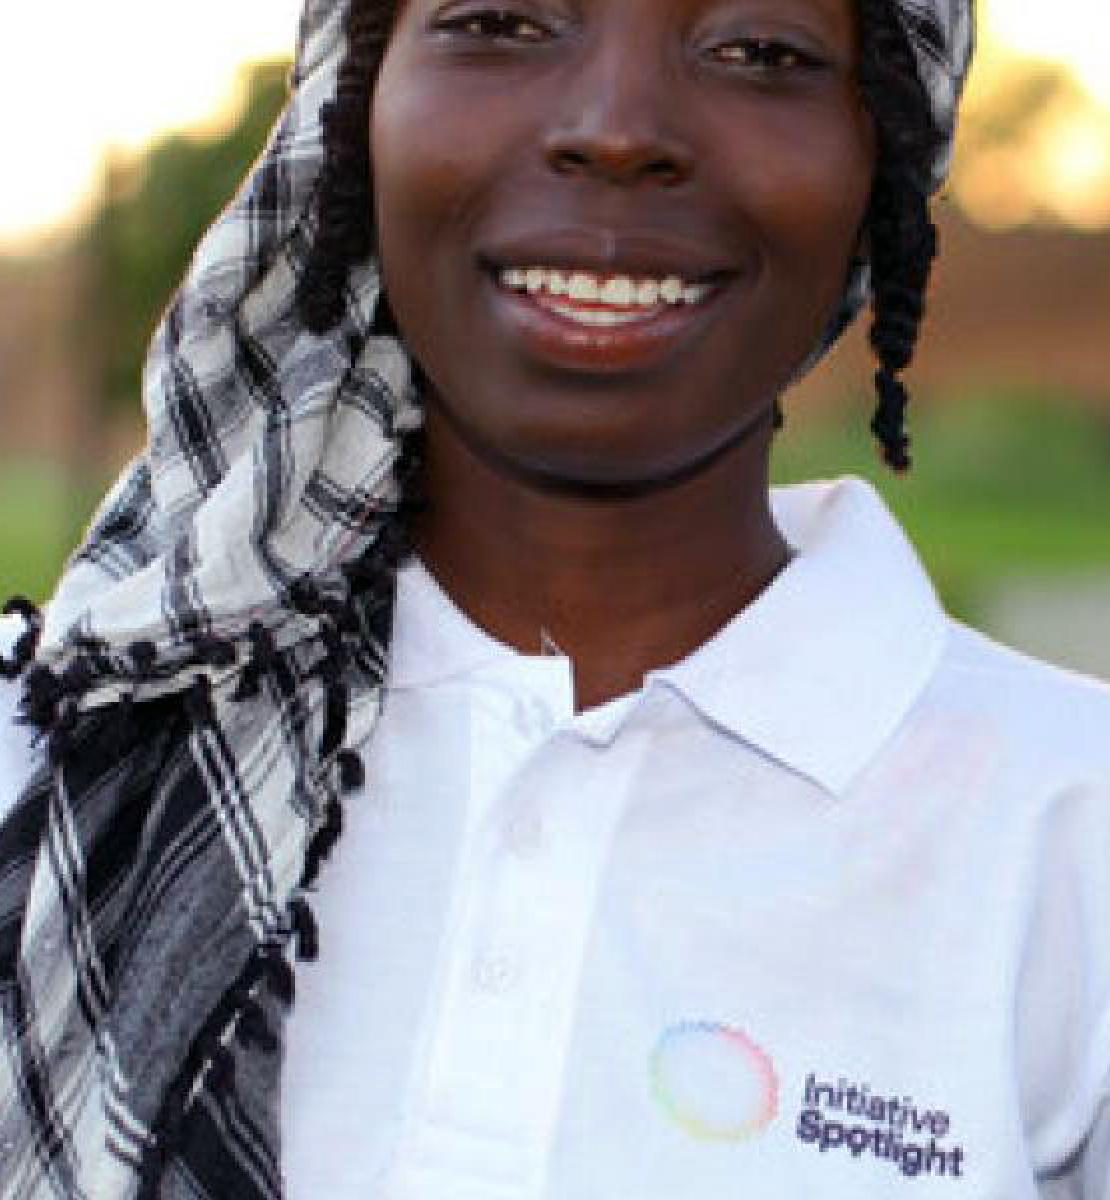 Photo of poet, Hama Daouda  Fatouma, wearing a white polo Spotlight Initiative shirt.